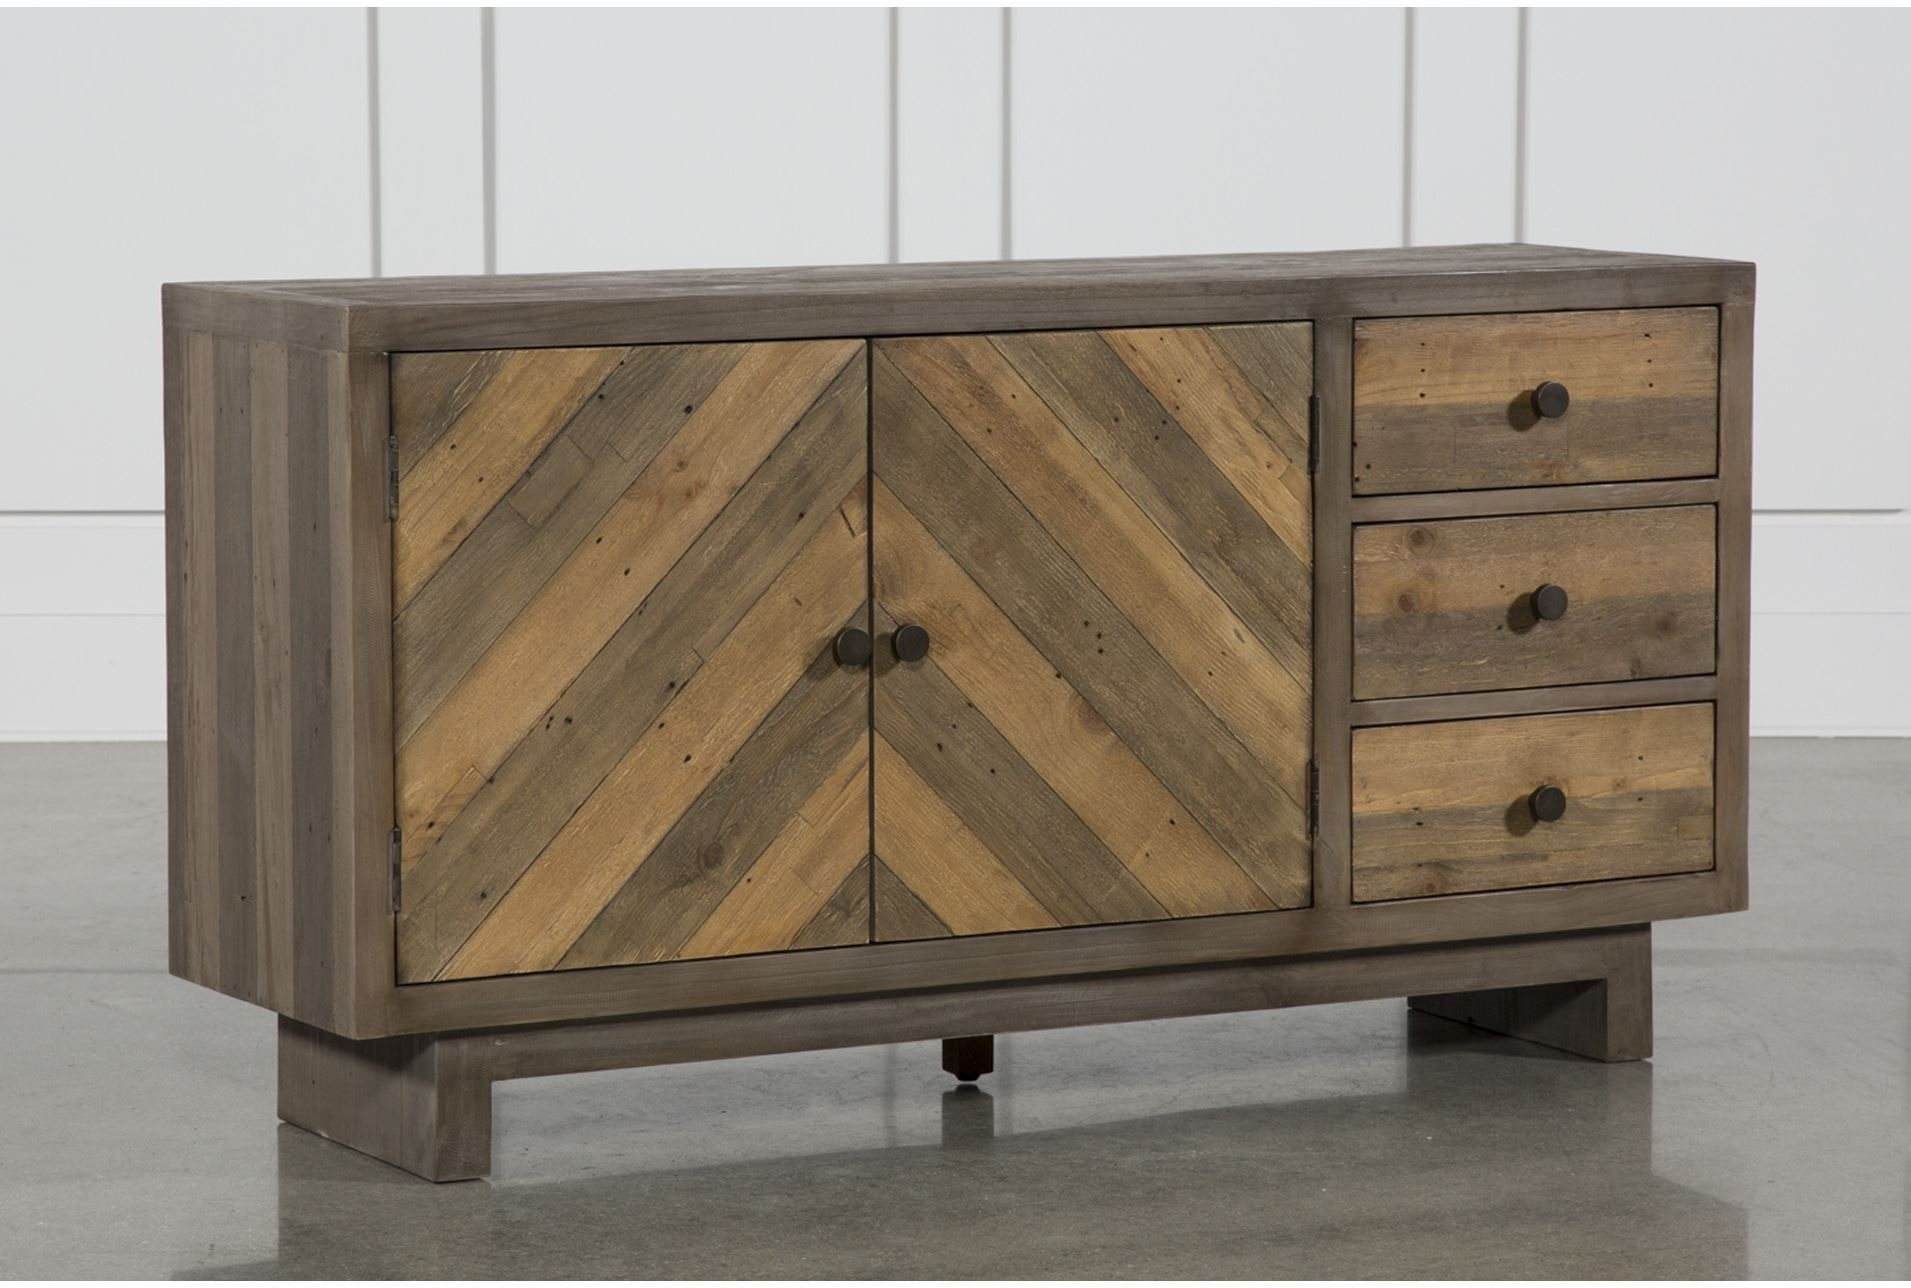 Otb Aged Pine 3 Drawer/2 Door Sideboard, Brown   Pinterest   Products For 2017 Mid Burnt Oak 71 Inch Sideboards (View 5 of 20)